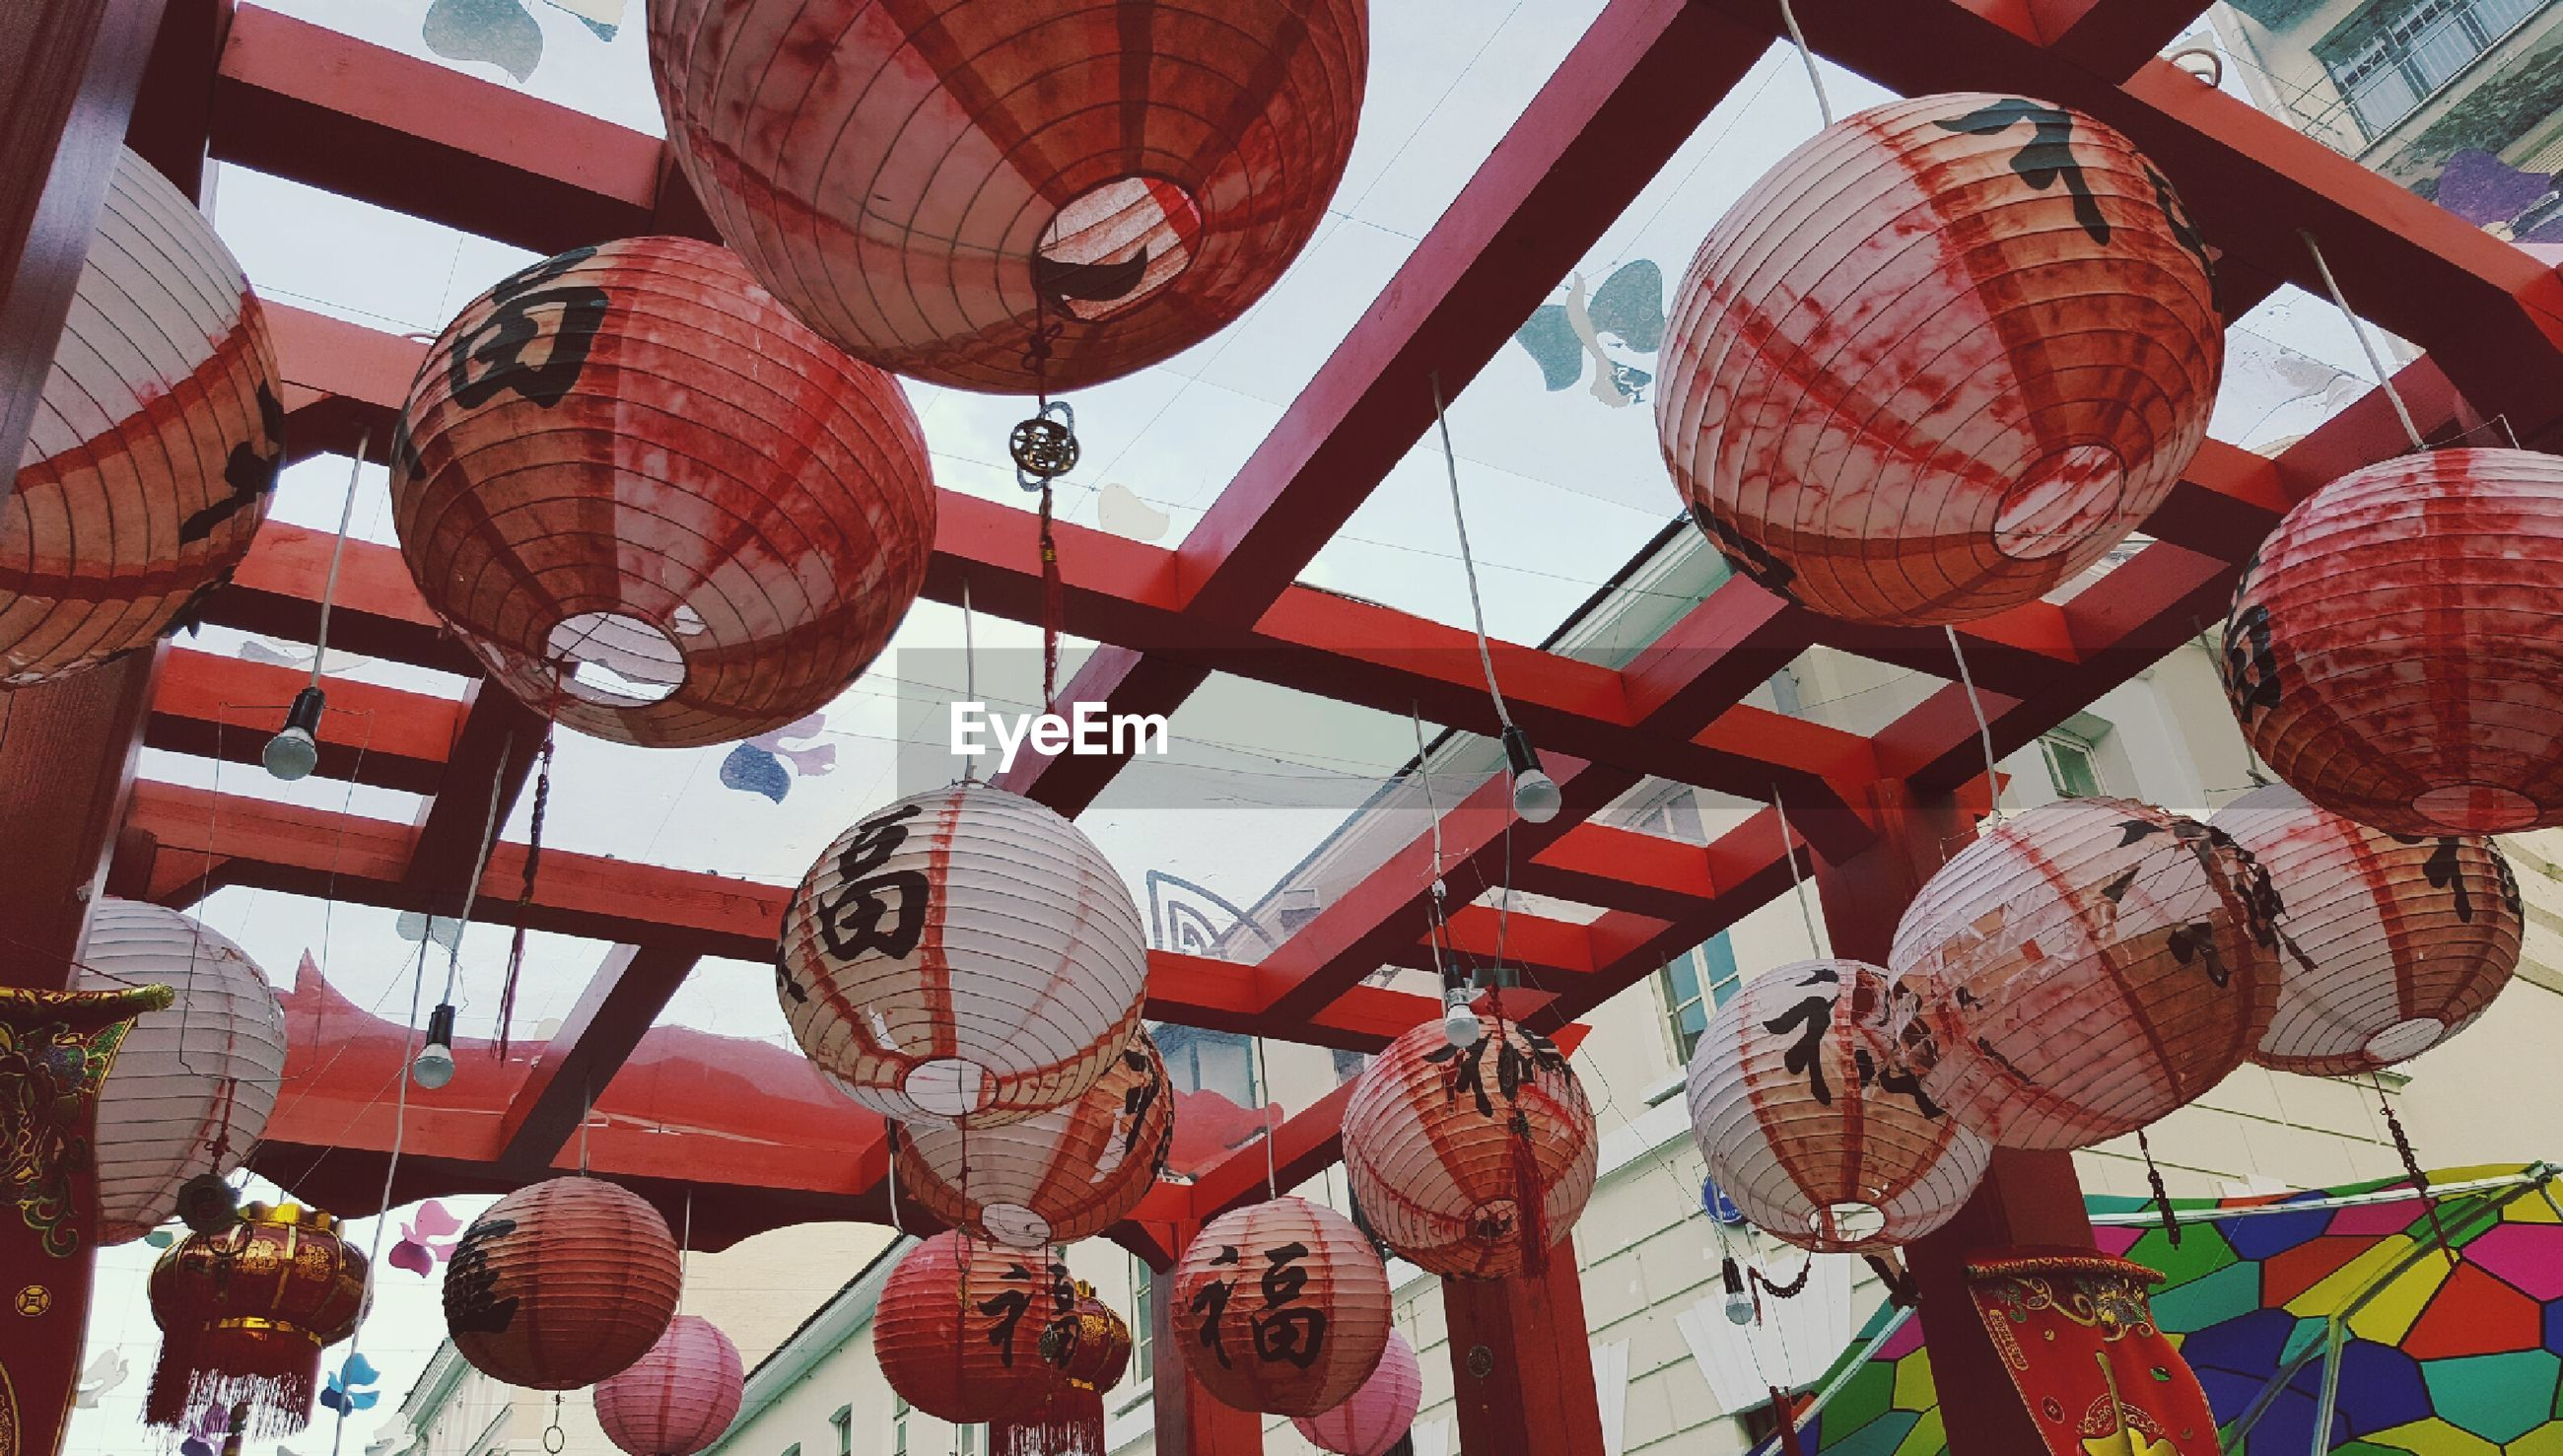 Low angle view of chinese paper lanterns hanging from red wooden structure at chinatown